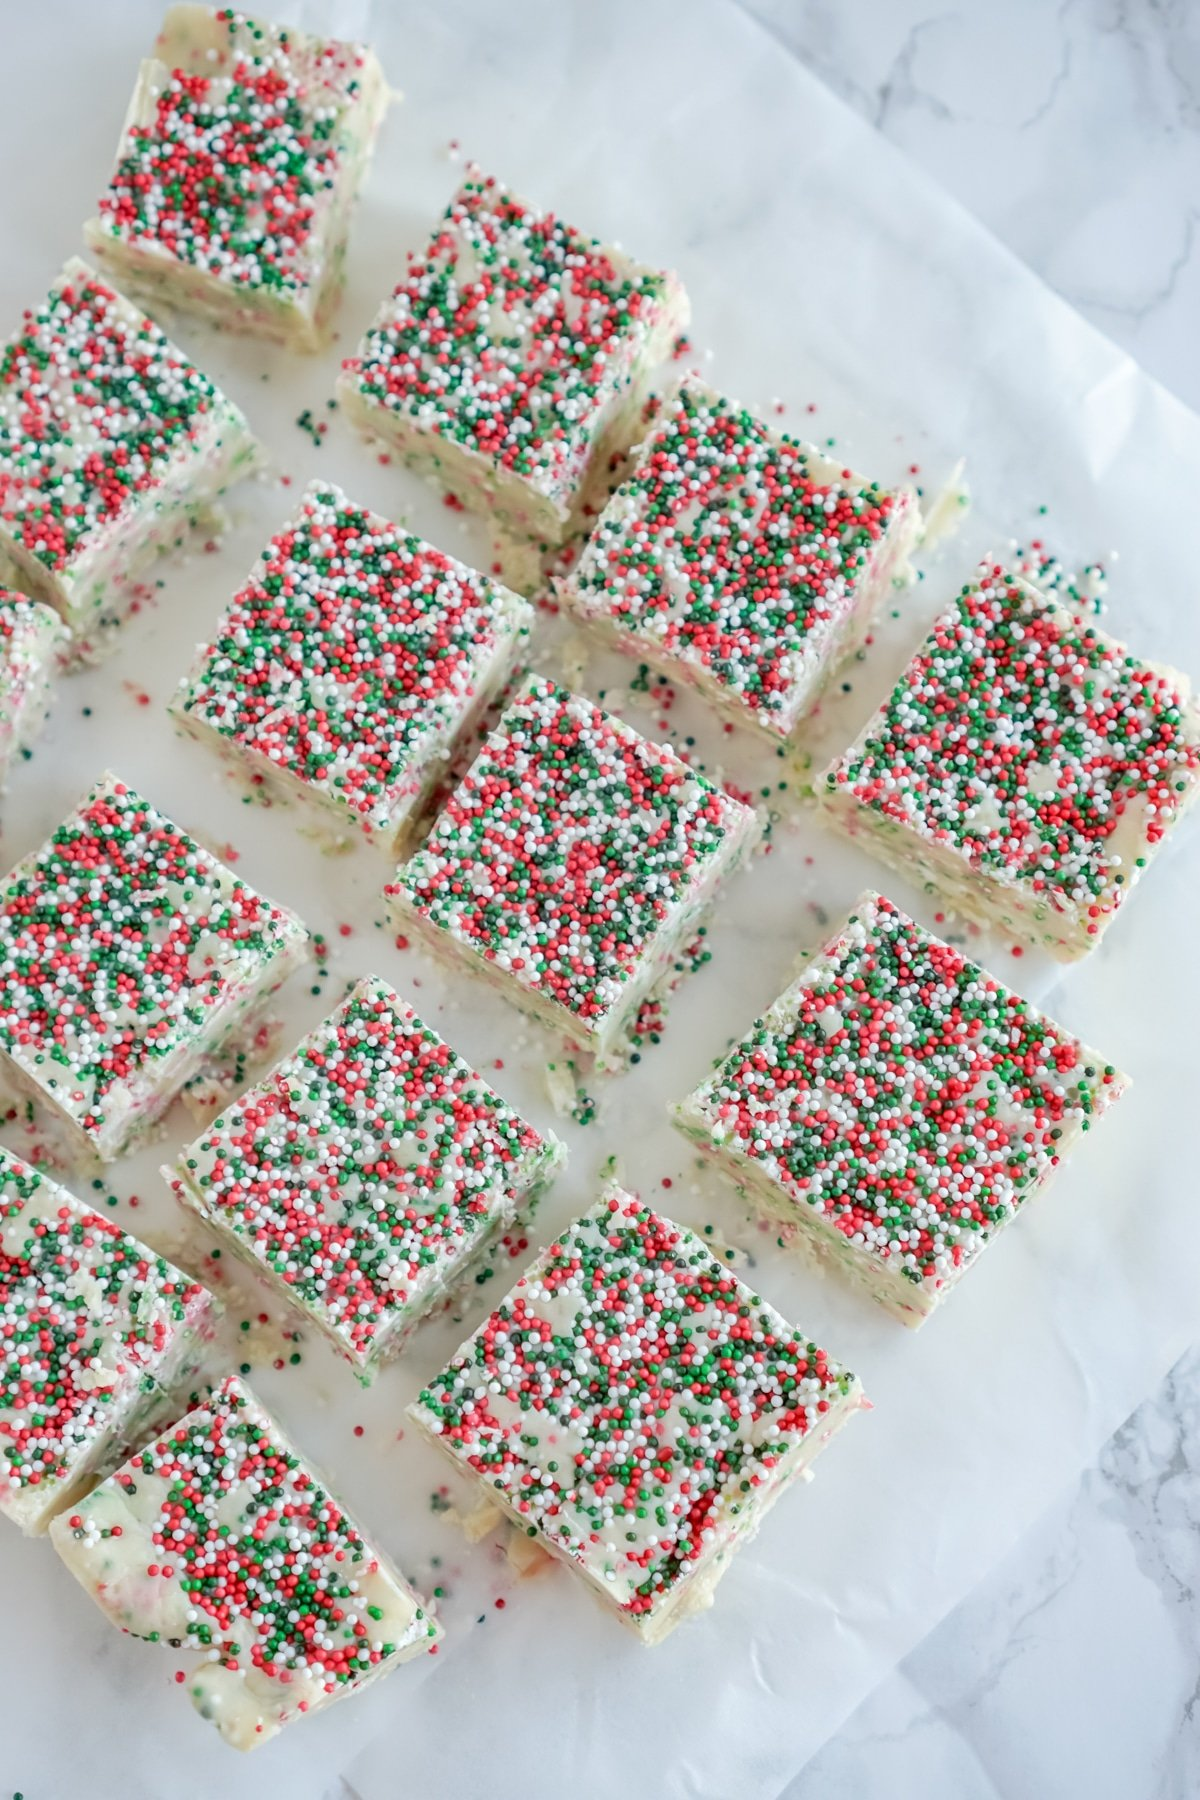 White chocolate fudge with sprinkles cut into squares